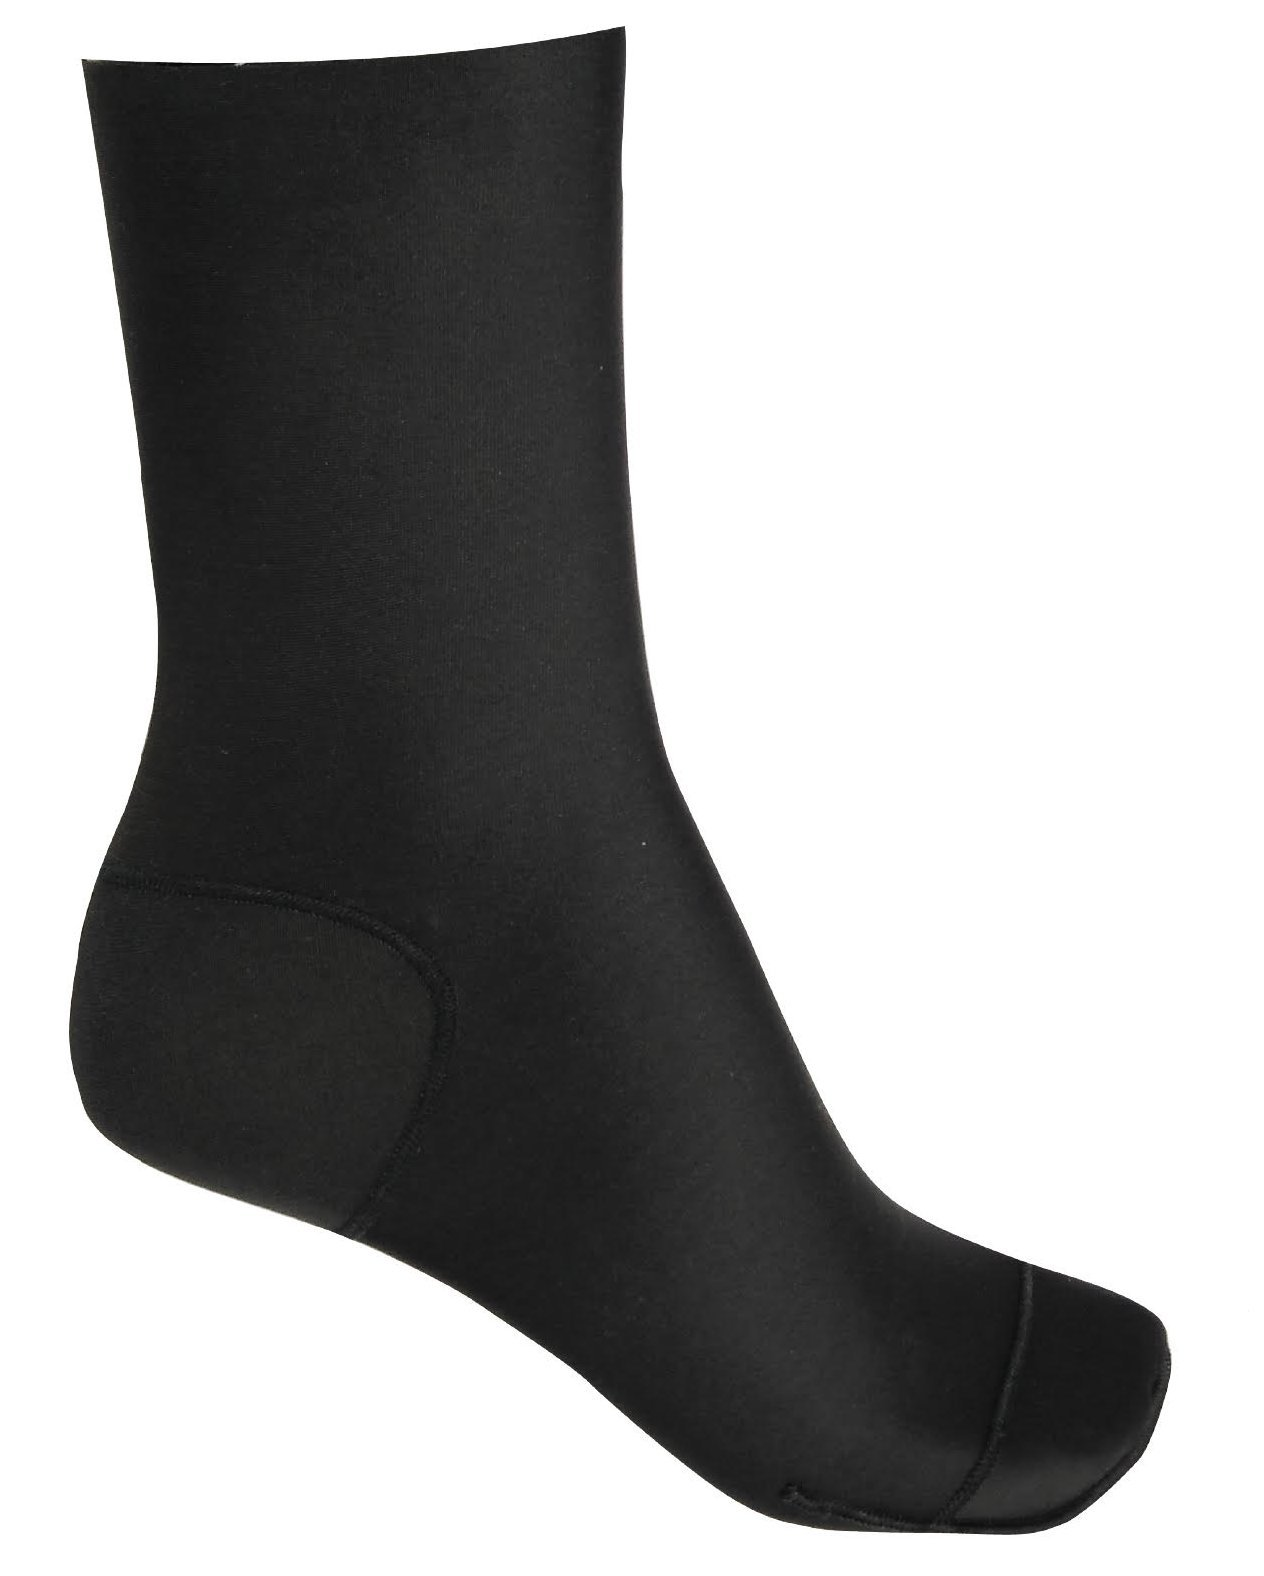 ArmaSkin Extreme Anti-Blister Hiking Crew Socks for Men and Women (Small, Black) by ArmaSkin